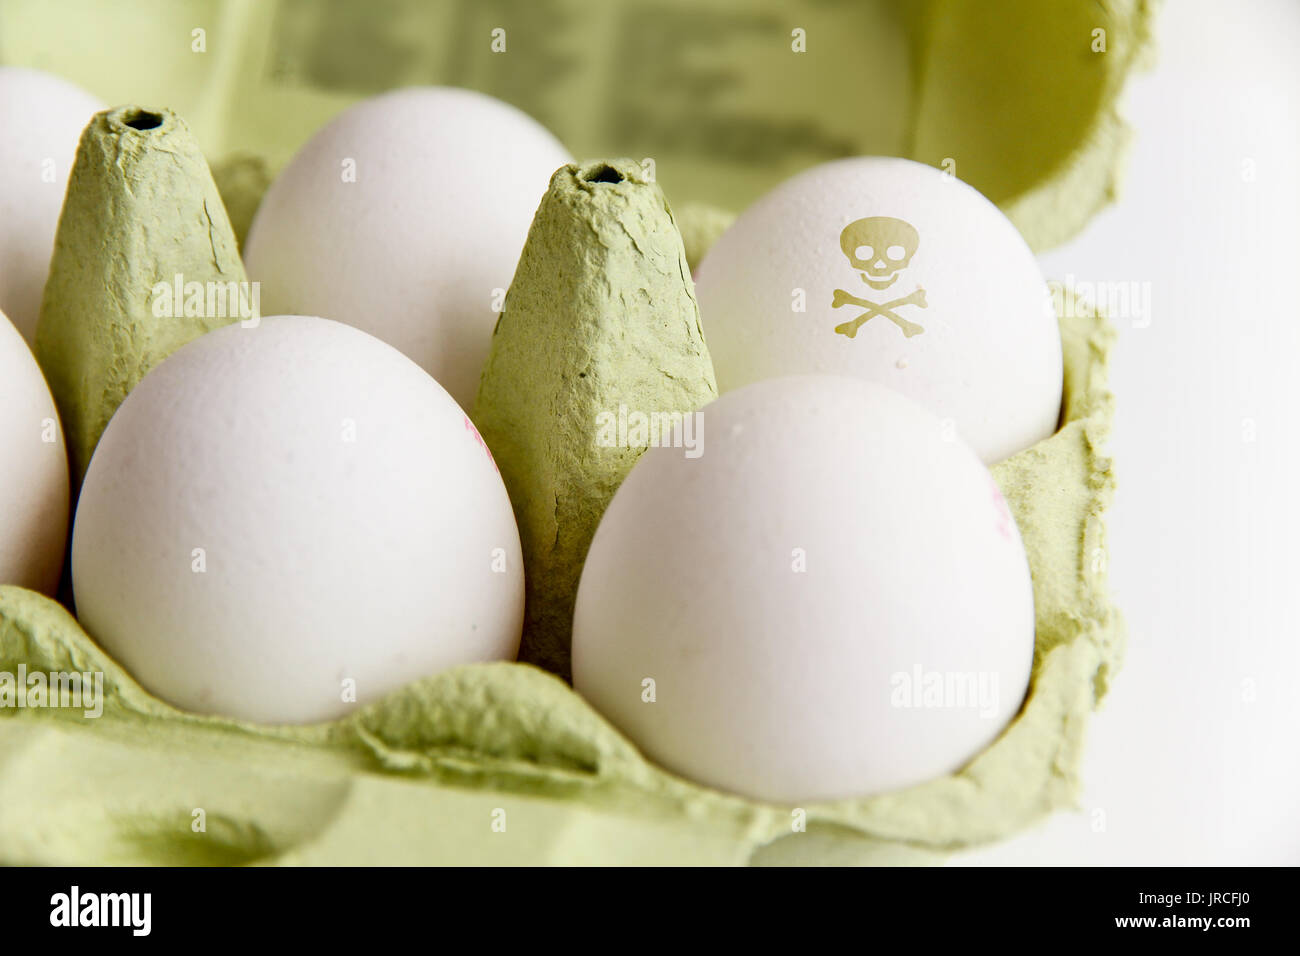 Eggs in a package with one egg painted with a poisonous risk symbol skull and bones. Image concept for food contamination, tainted eggs scandal. - Stock Image